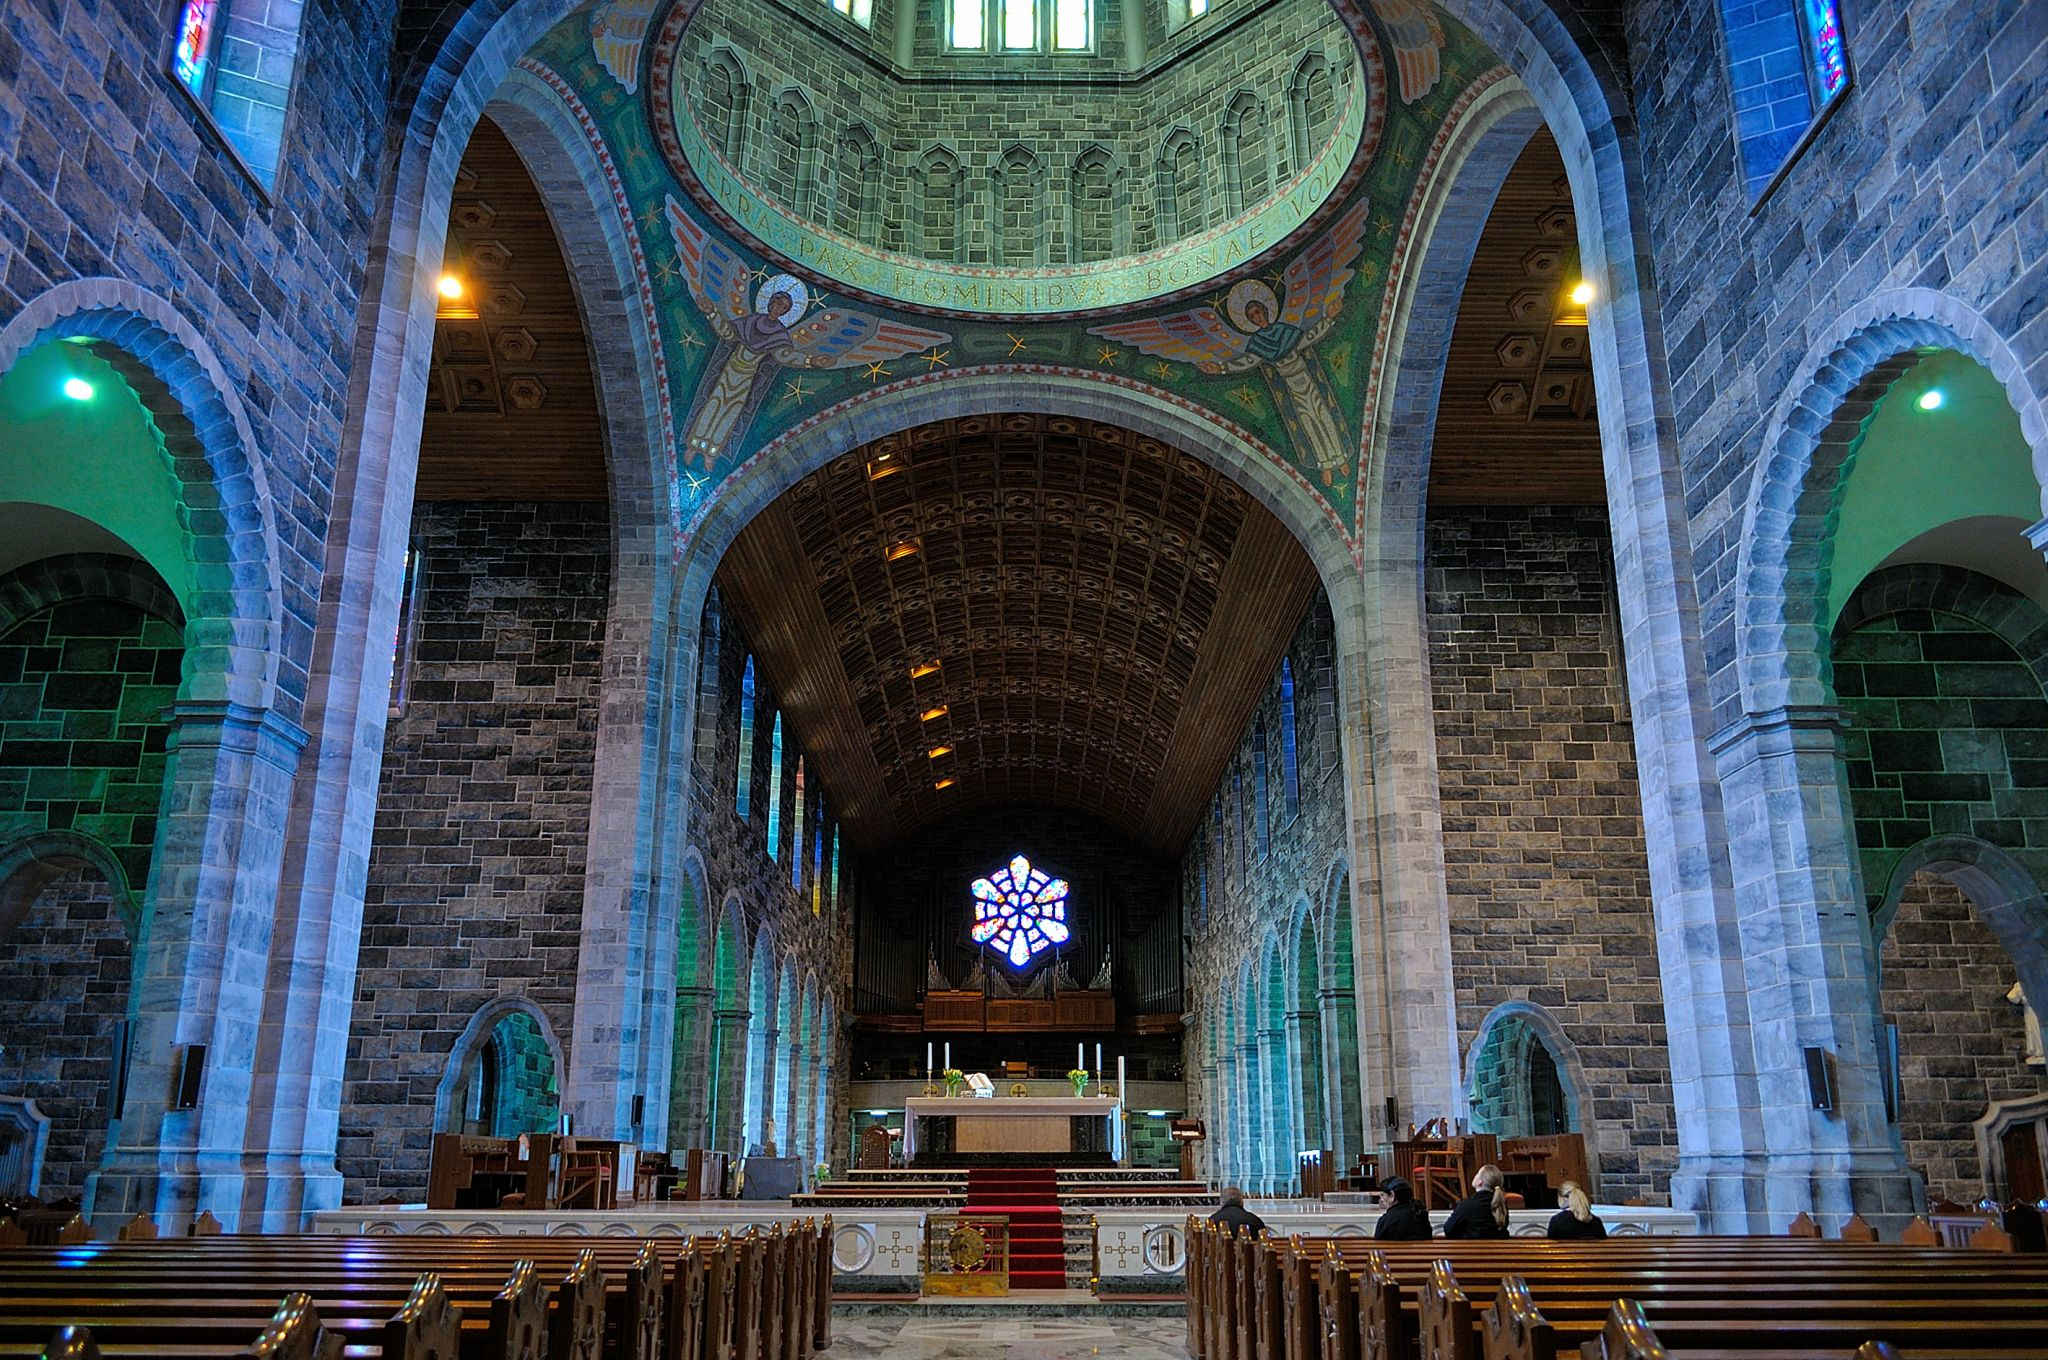 Interior of Galway Cathedral, co Galway., Ireland